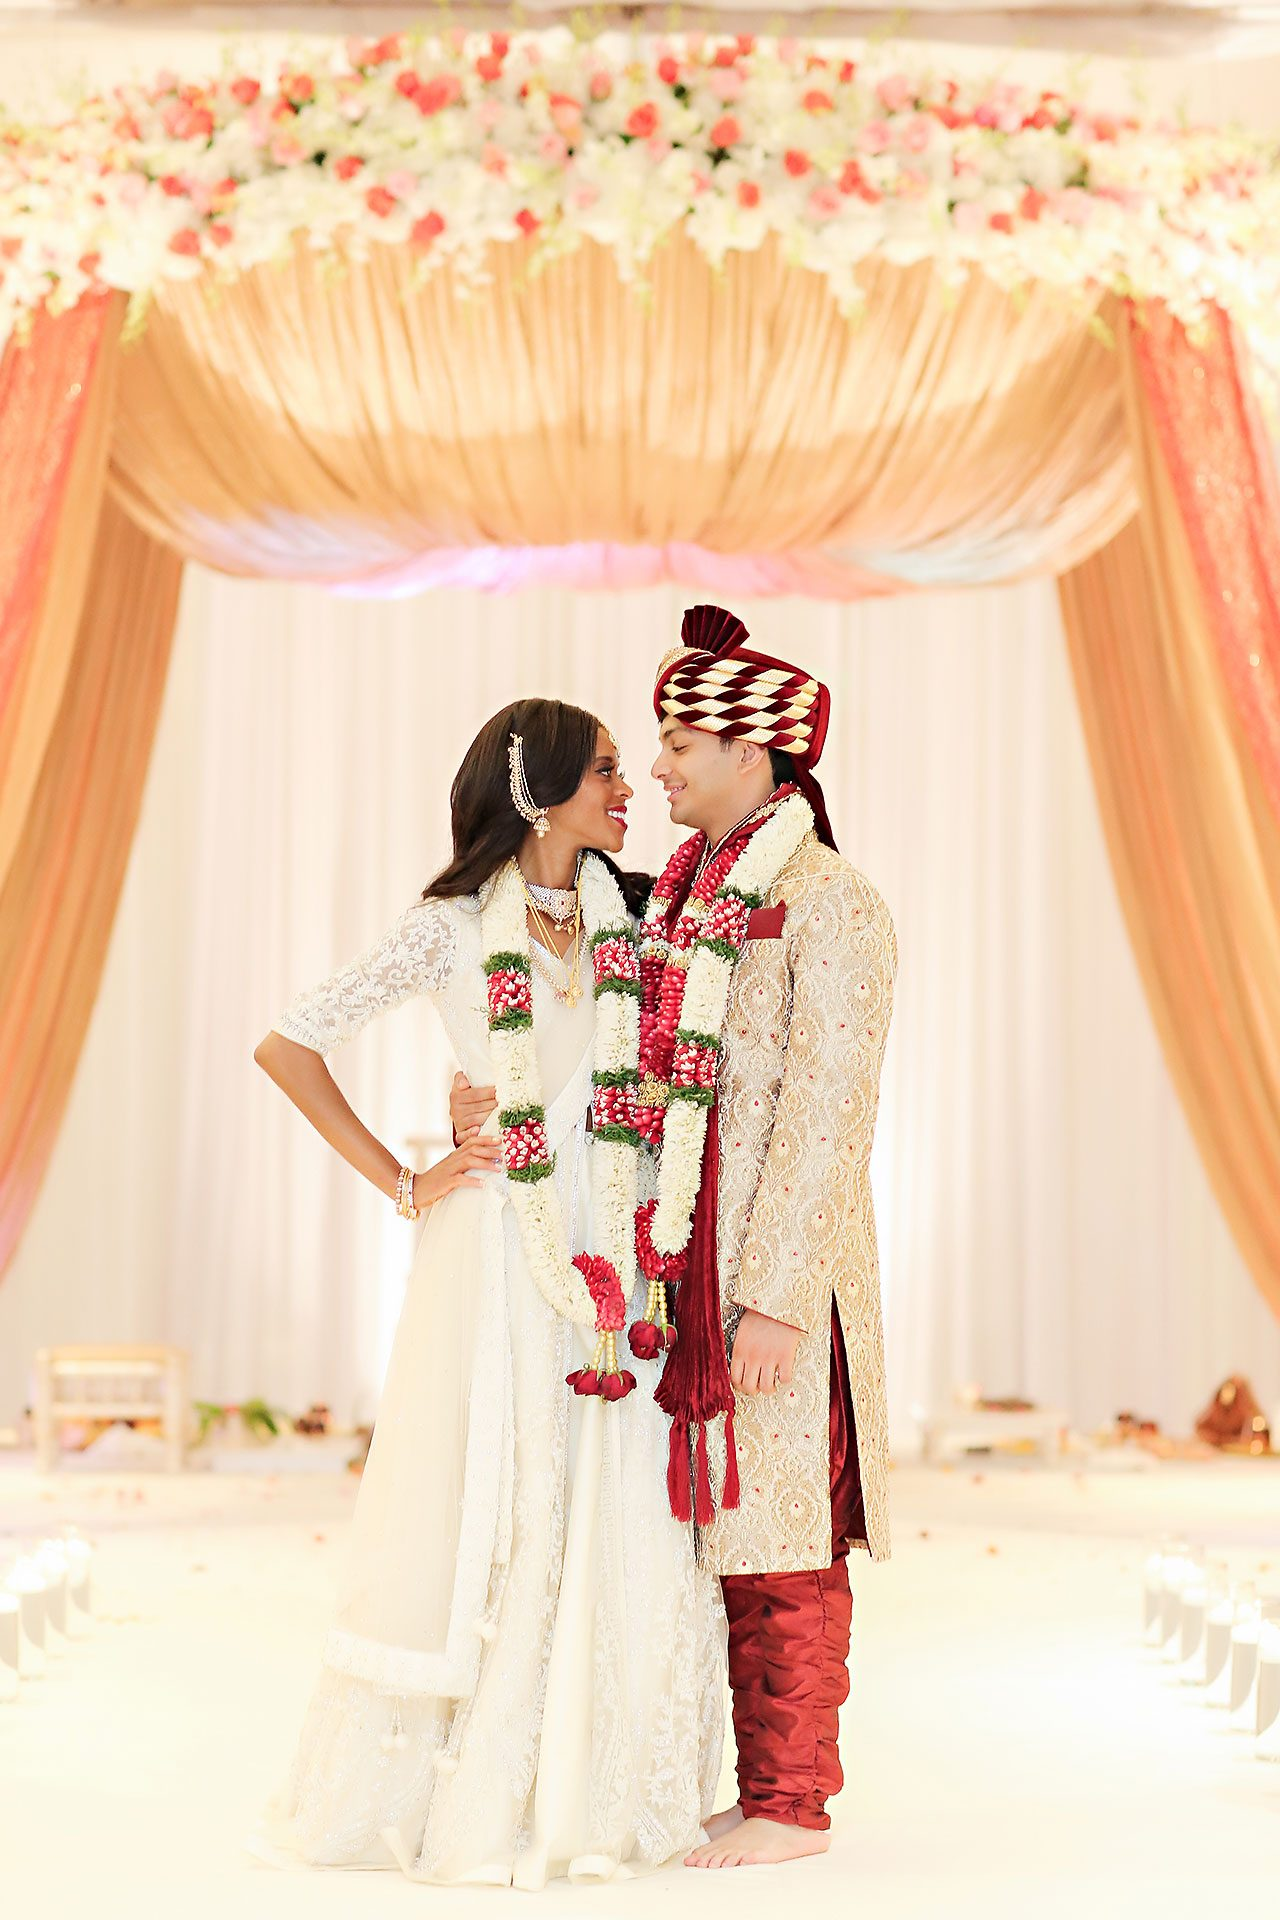 Joie Nikhil JW Marriott Indian Wedding 325